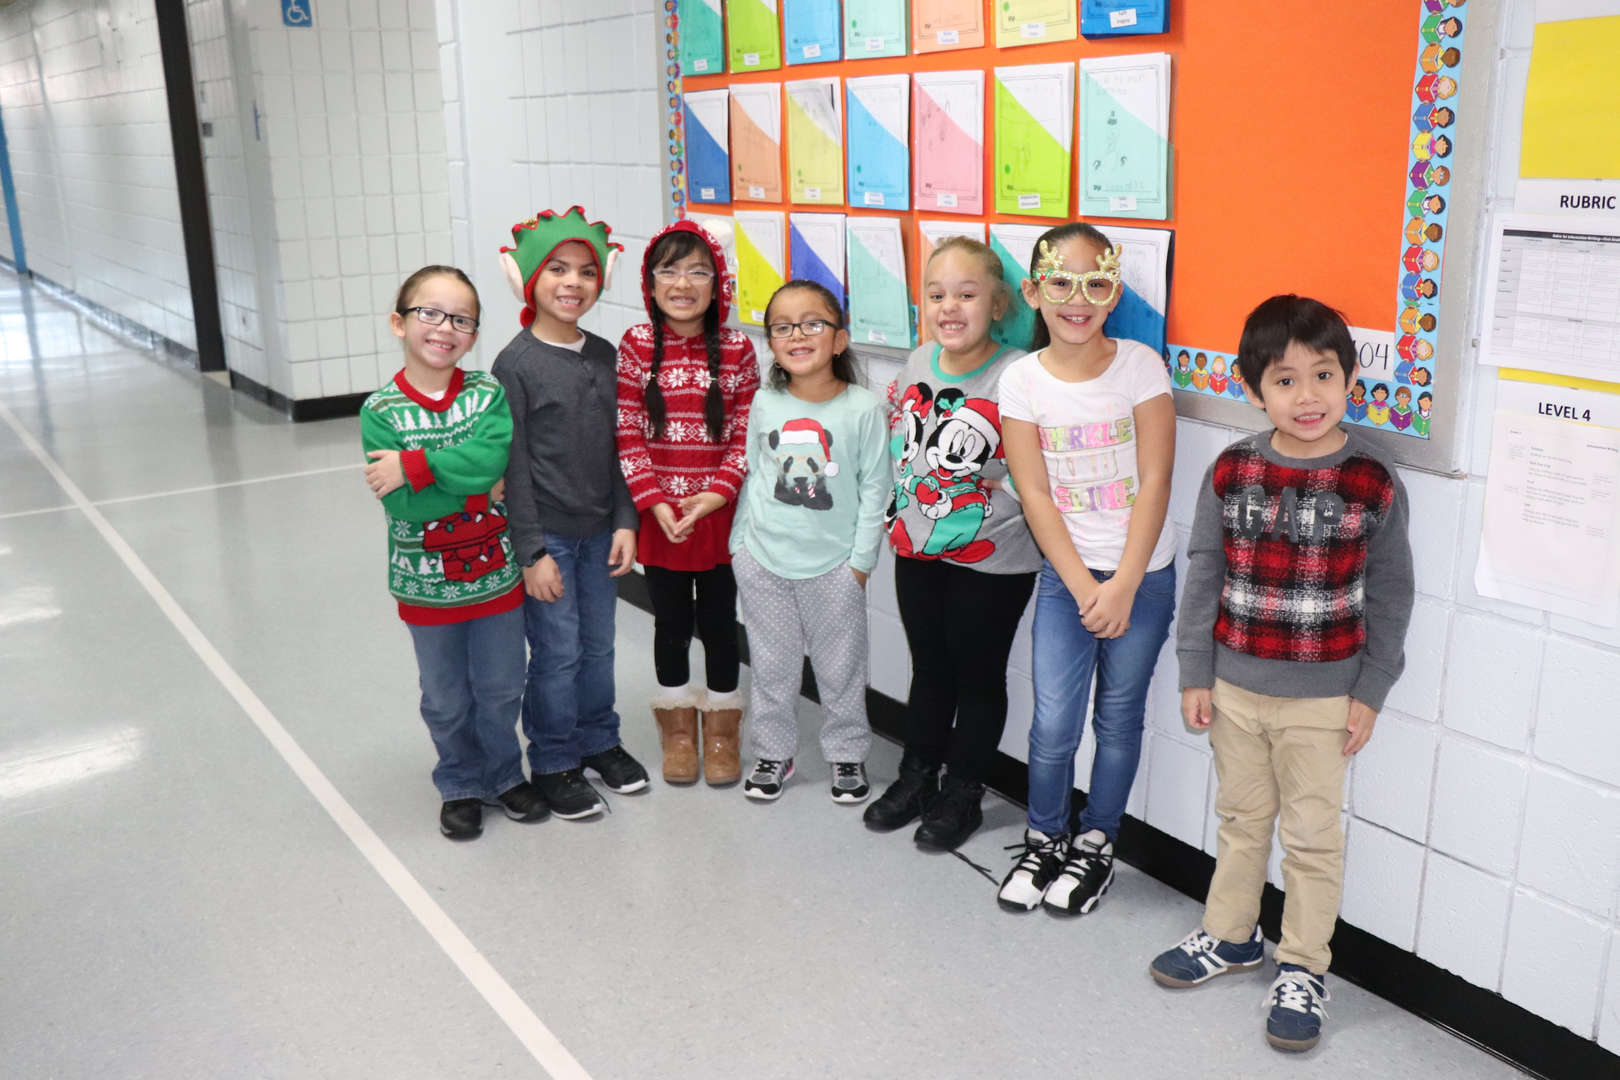 Some of Ms. Kinney's First Grade students.